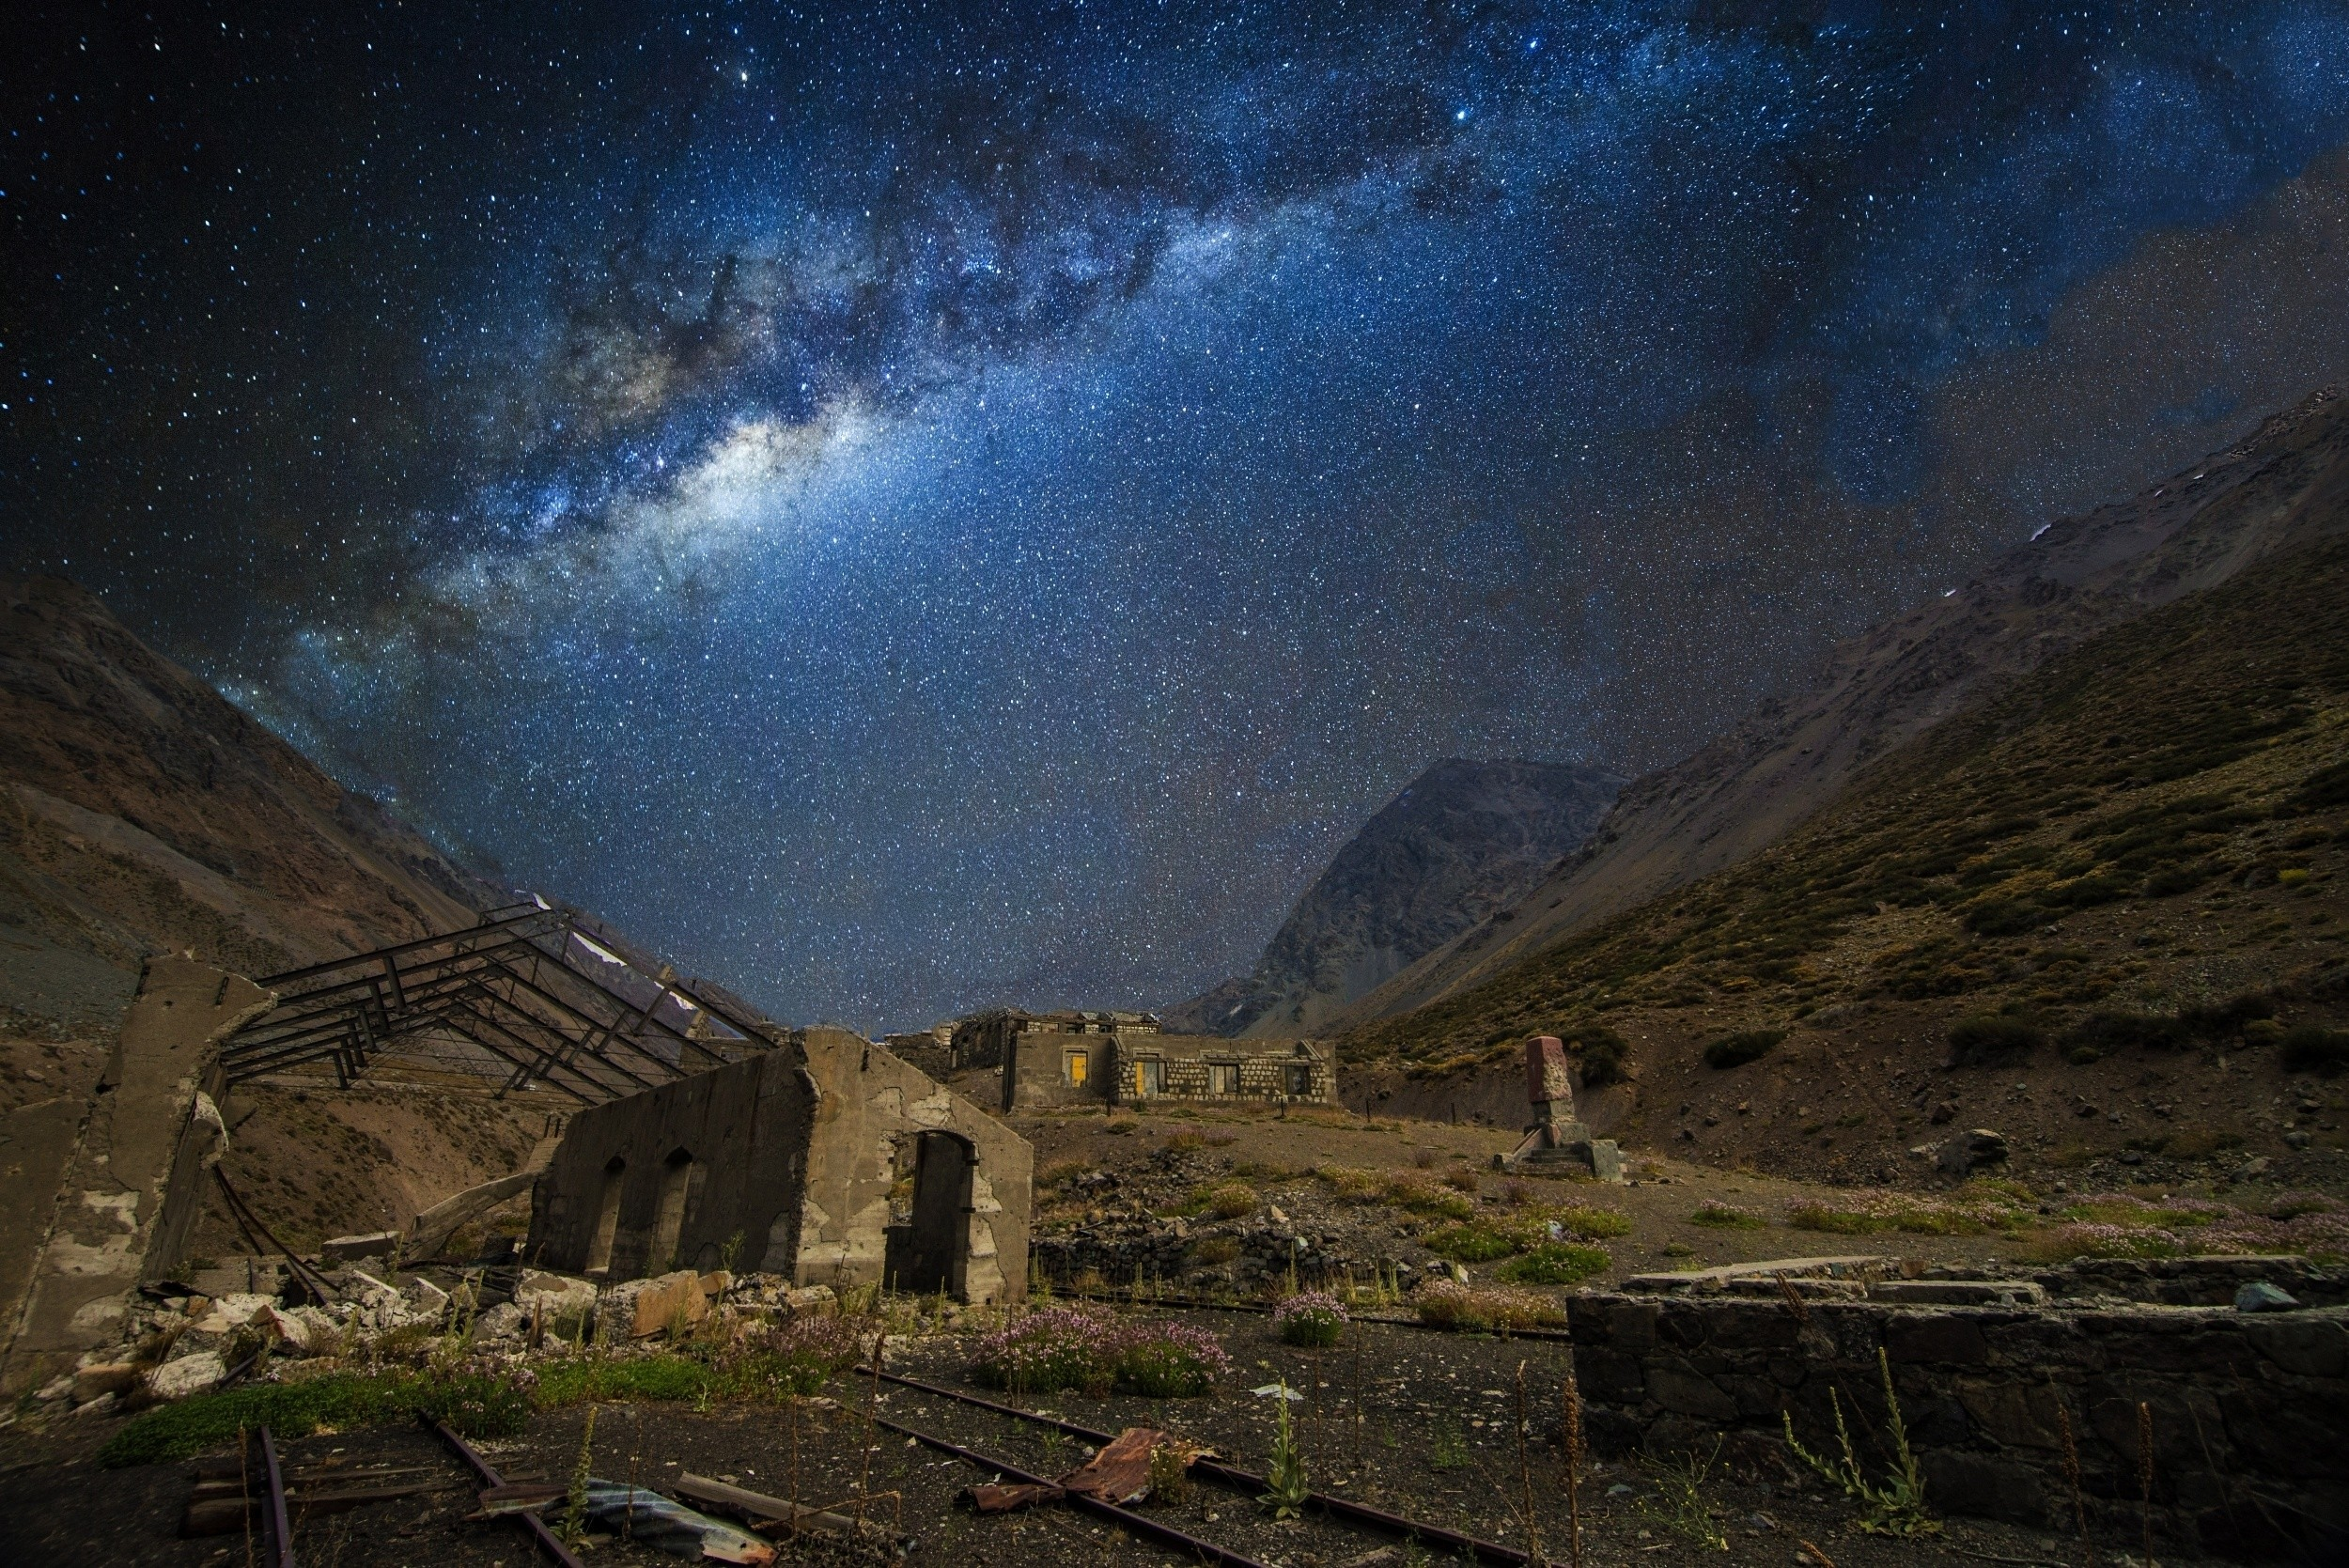 General 2500x1669 nature landscape train station abandoned mountains Milky Way galaxy starry night railway Chile long exposure